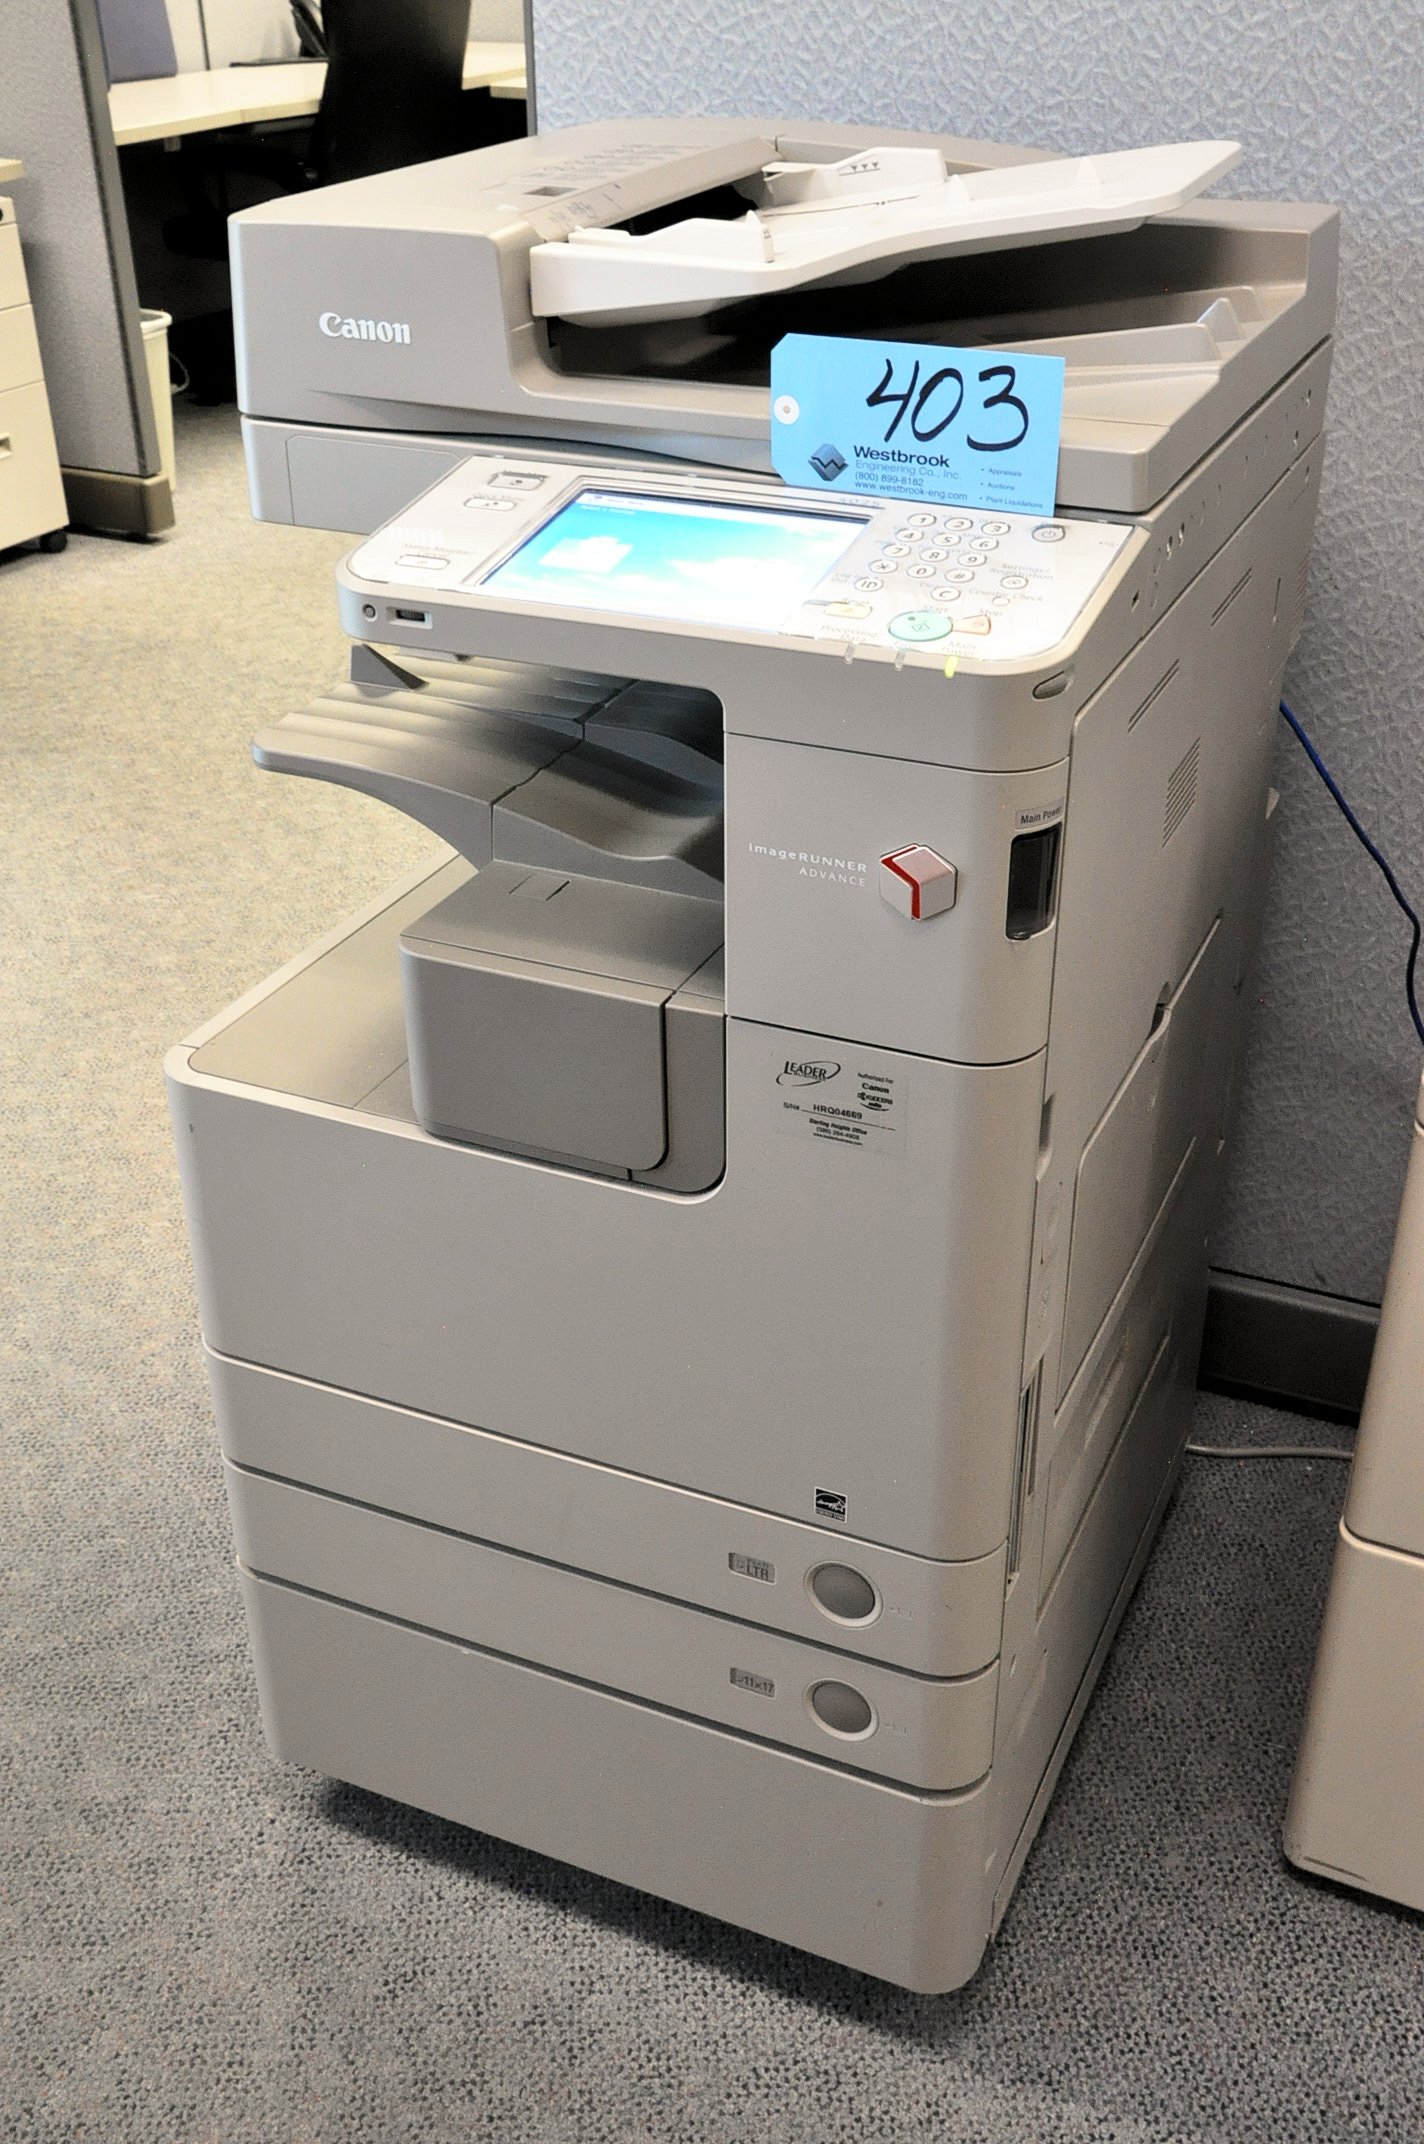 Canon 4025 Image Runner Multifunction Imaging System w/ Color Copy, B & W Print, Scan, Send, Store - Image 2 of 4